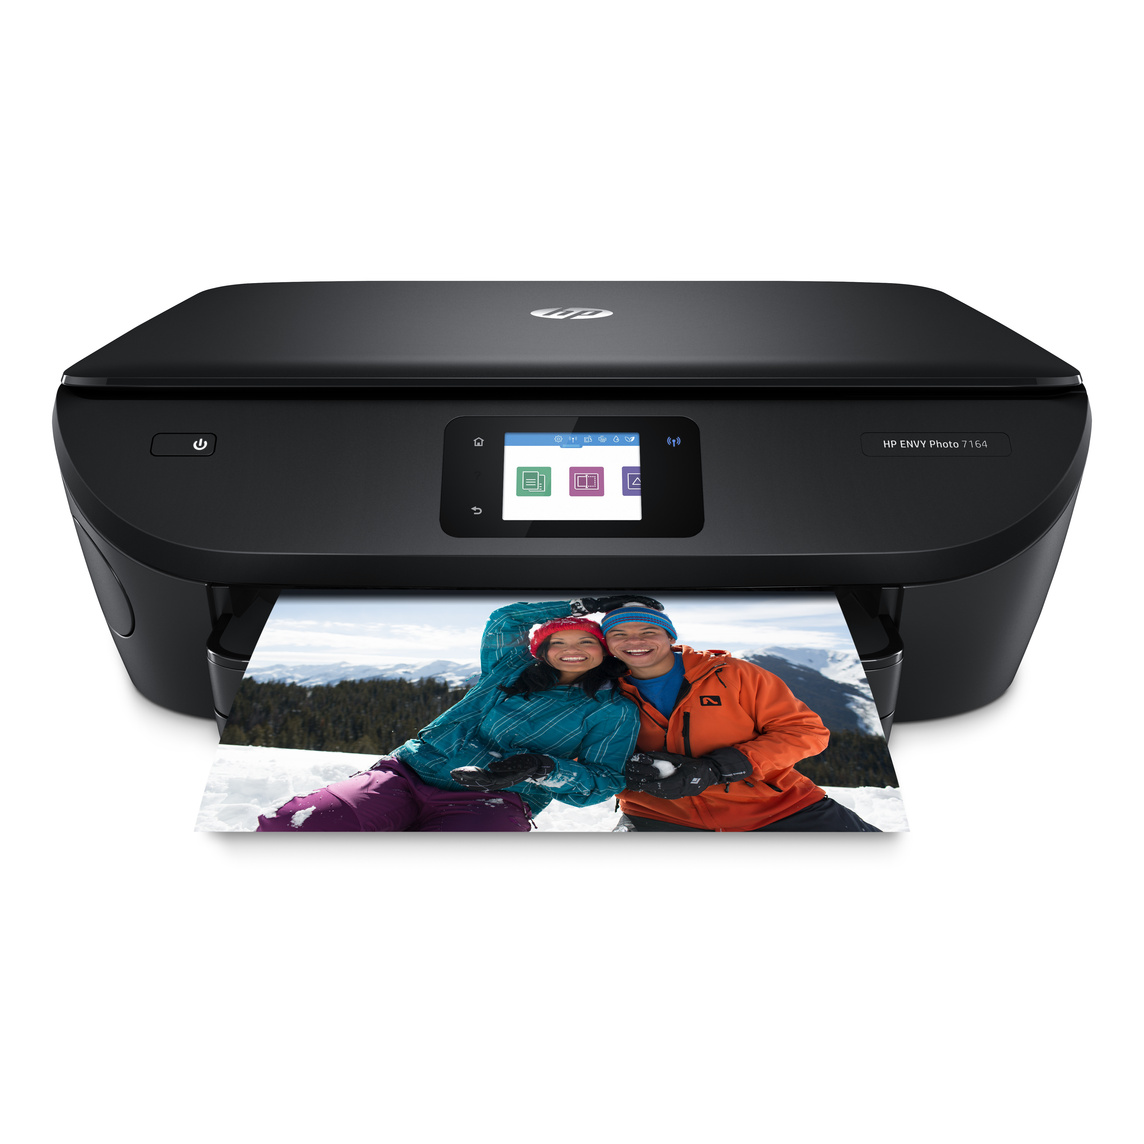 HP ENVY Photo 7164 All-in-One Printer - Apple